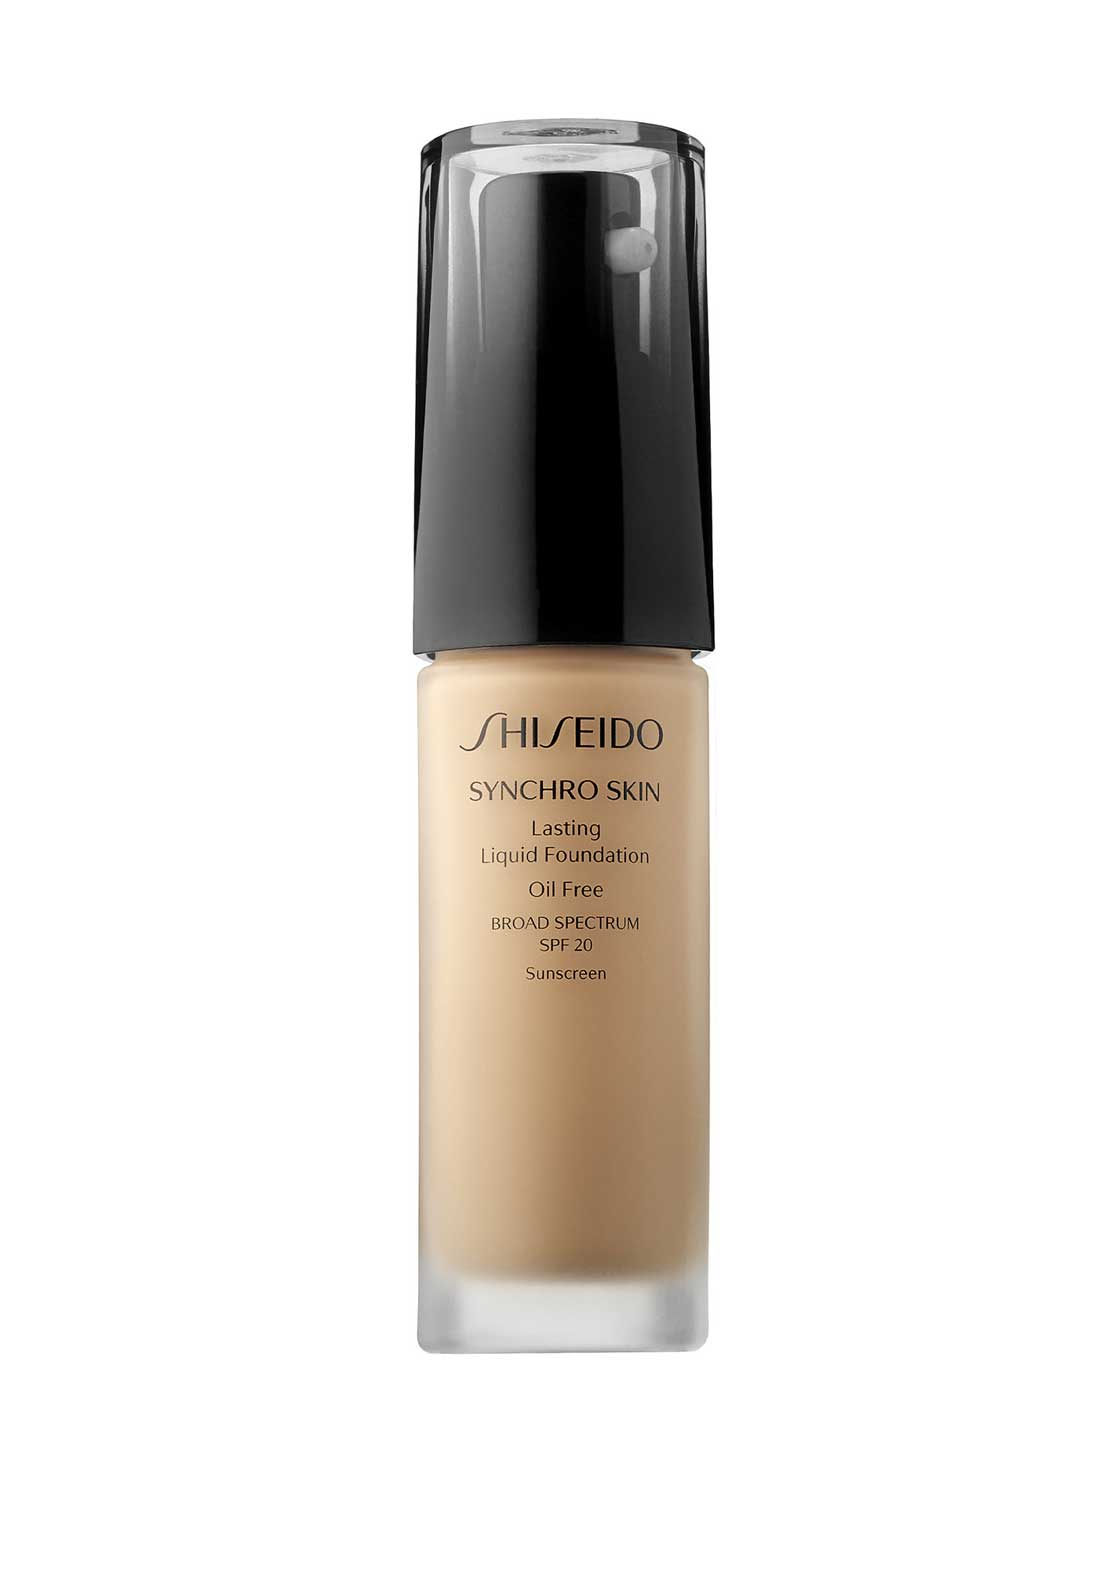 Shiseido Synchro Skin Lasting Liquid Foundation, Broad Spectrum SPF 20, Natural 2